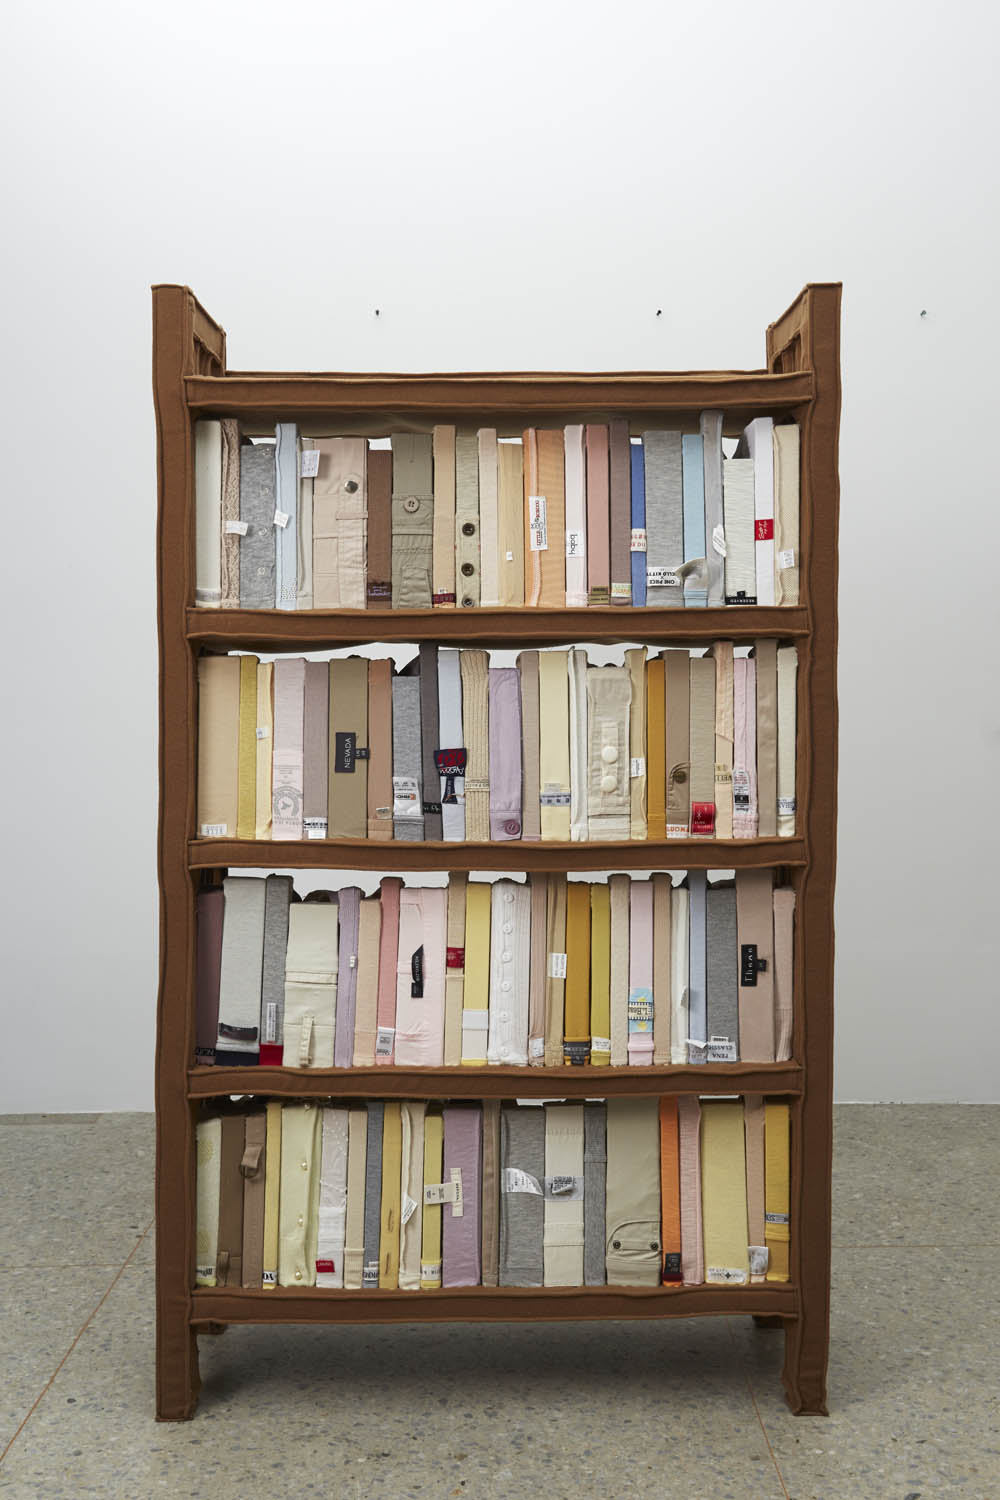 03 Bookshelf No 22 2009 Clothes Wood 137 X80x30cm Front